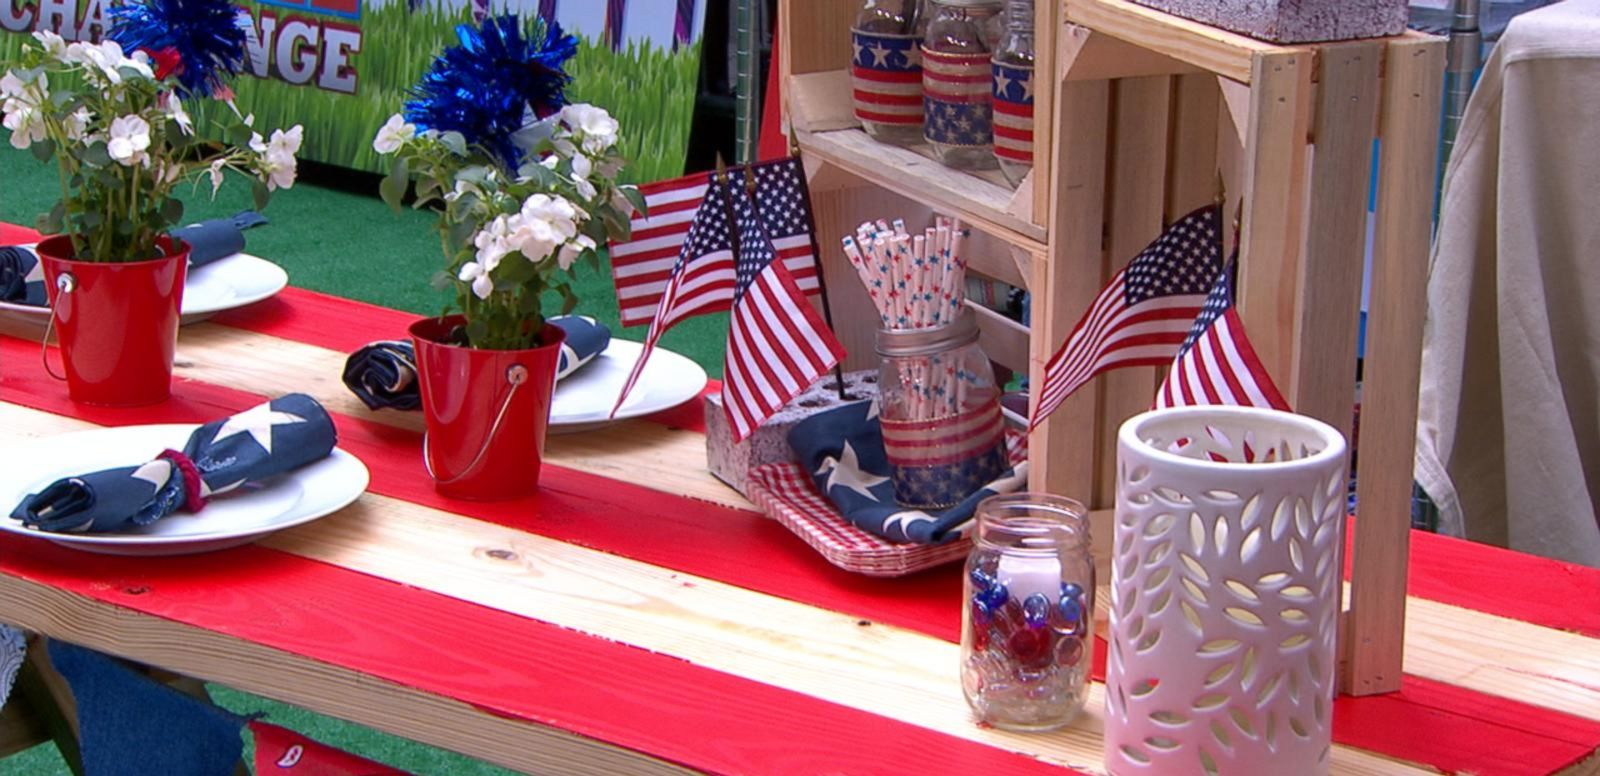 VIDEO: DIY Experts Tyler Wissler and Jenni Radosevich Transform Everyday Items Into Home Decor